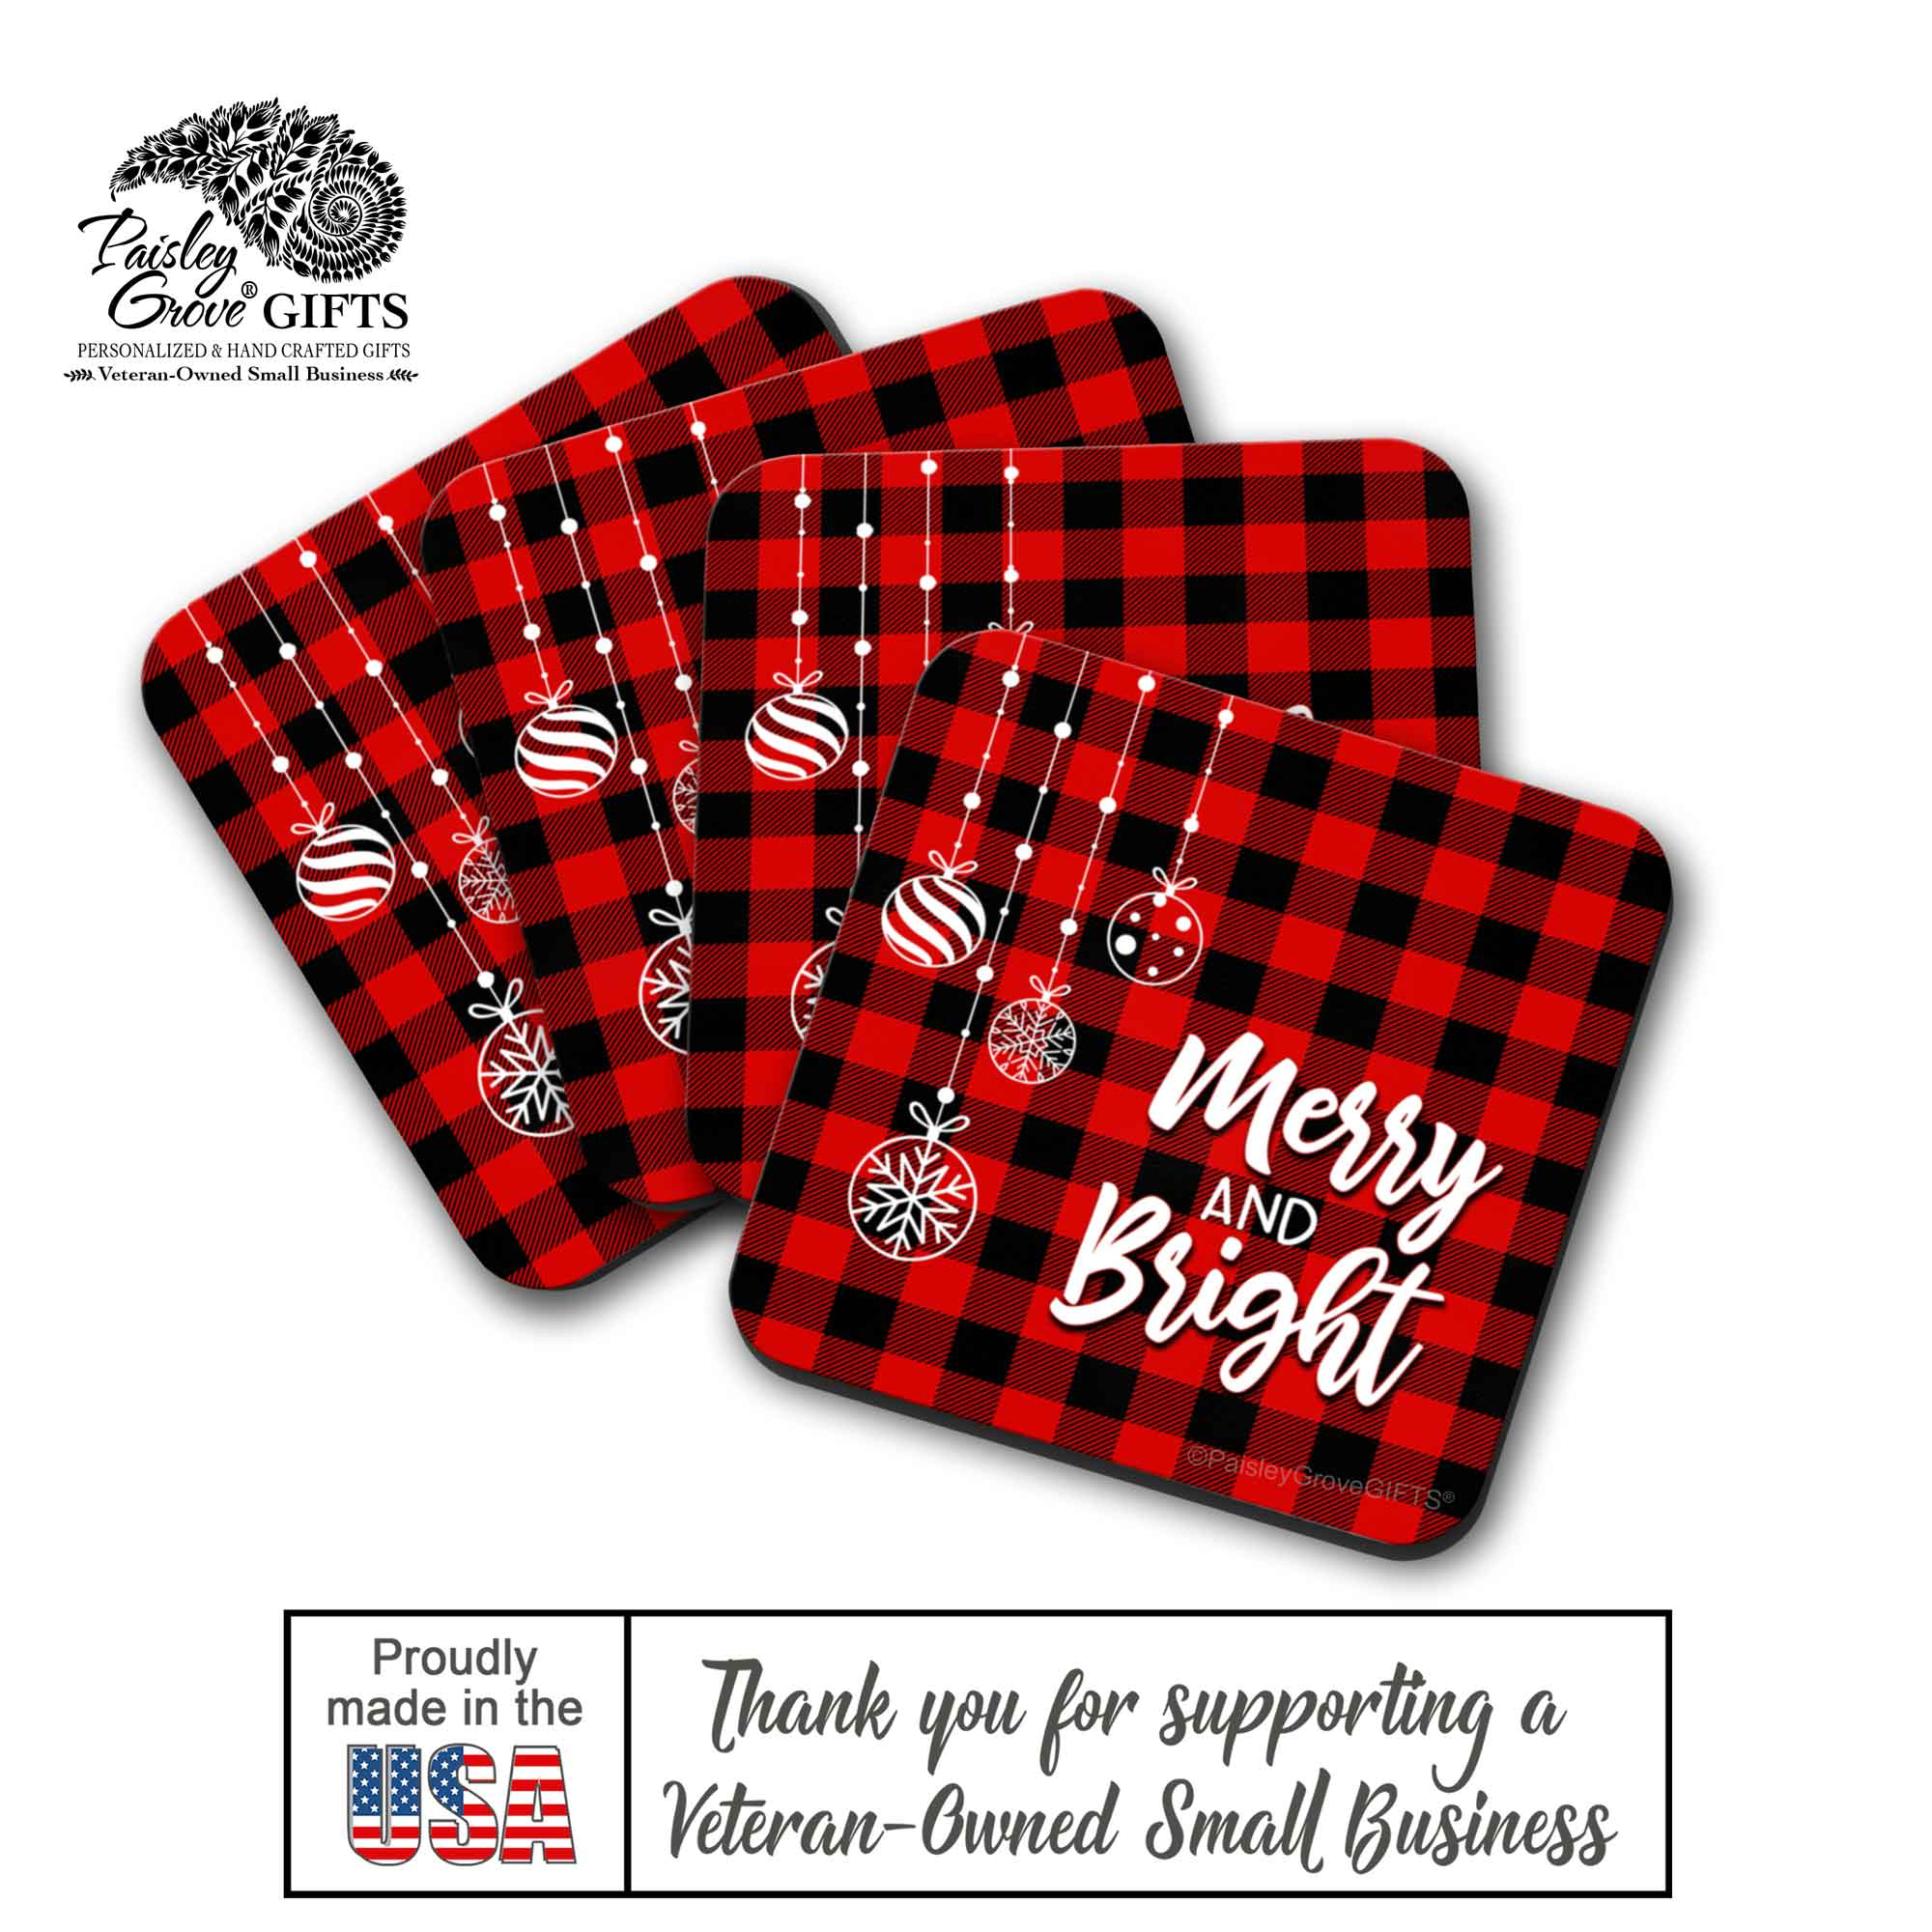 CopyrightPaisleyGroveGIFTS S704b Quality Drink Coasters for Christmas Made In the USA by a Military Veteran